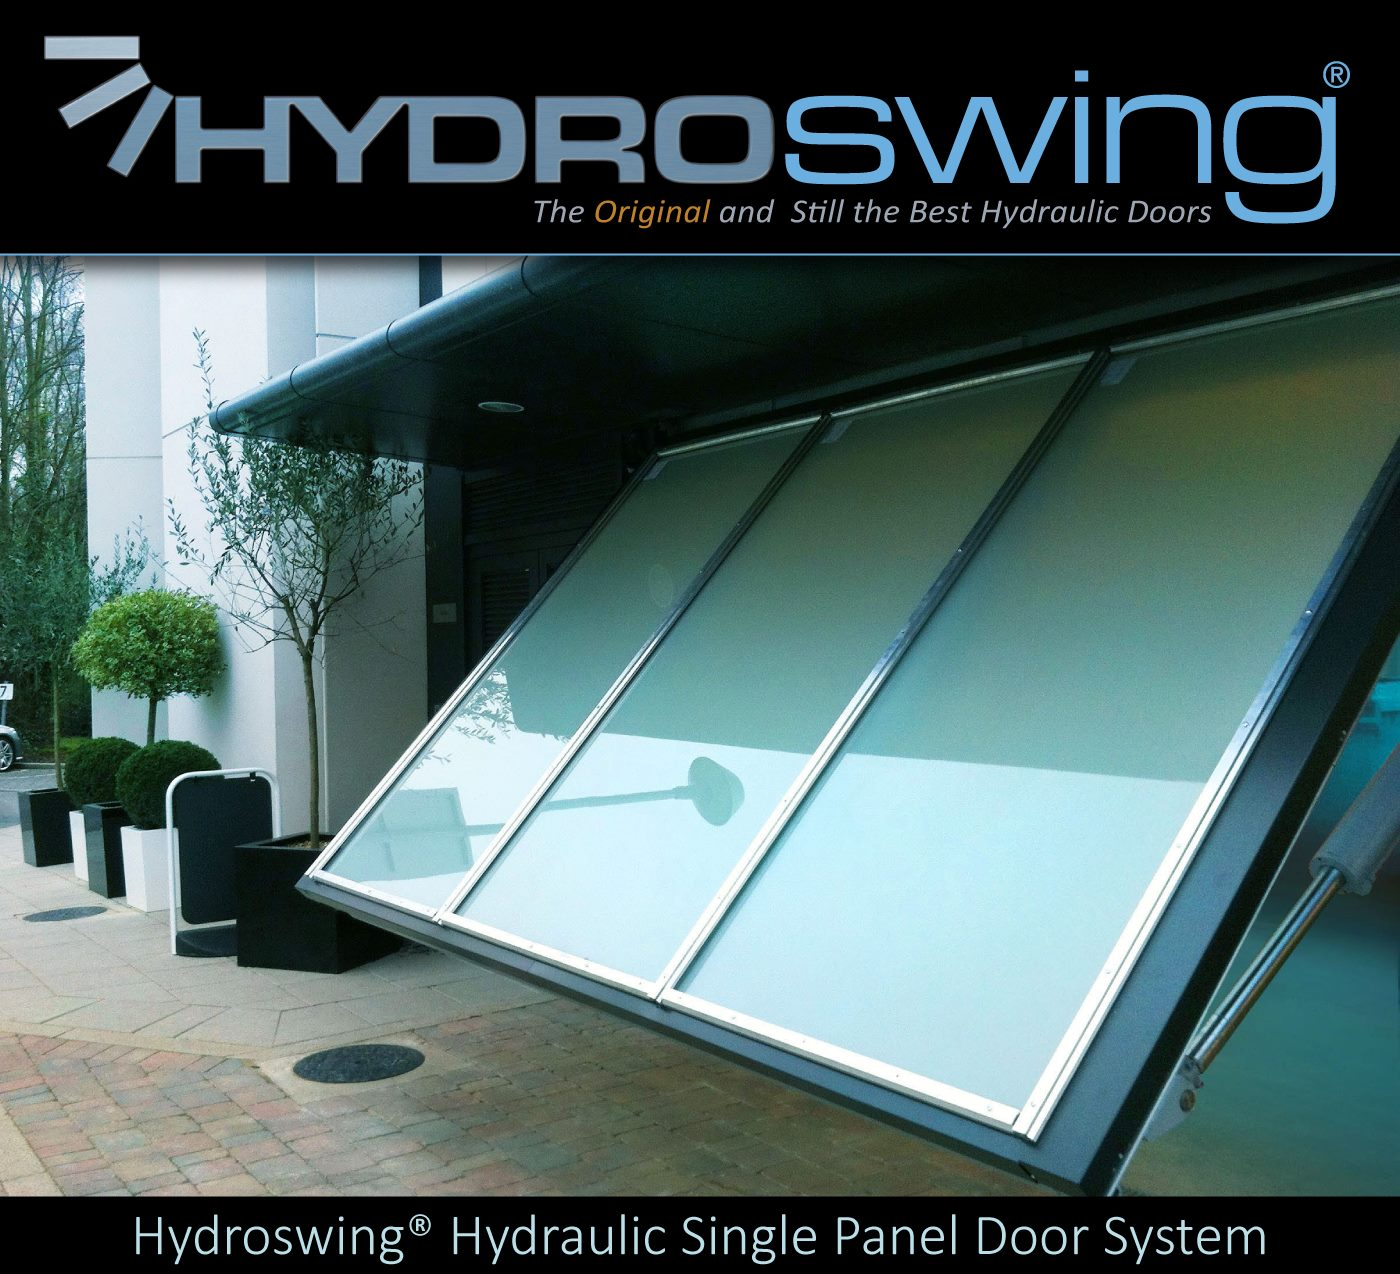 glass hydroswing hydraulic single panel door system